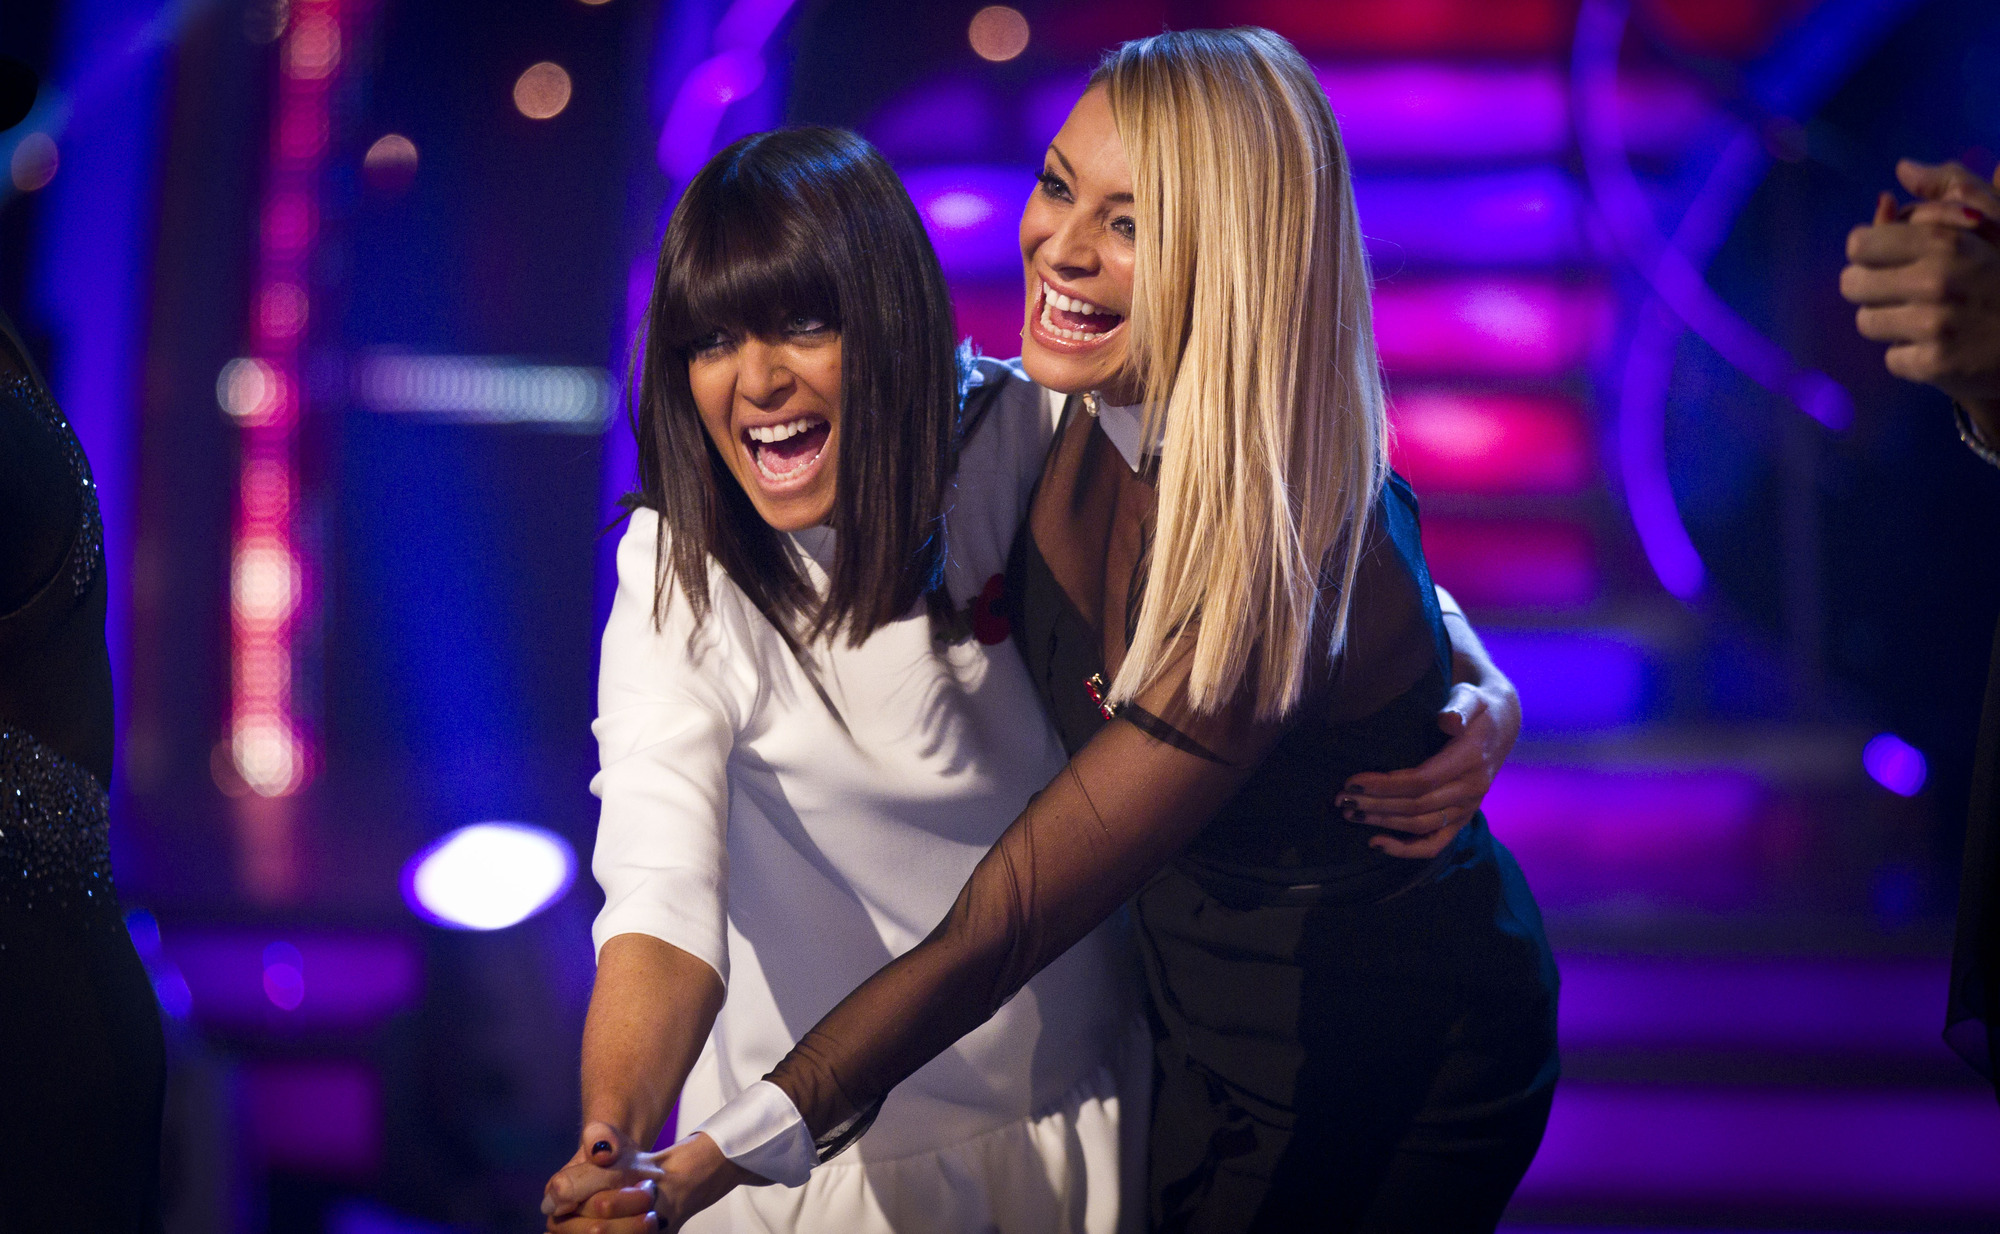 **Live Show** Claudia Winkleman, Tess Daly - (C) BBC - Photographer: Guy Levy